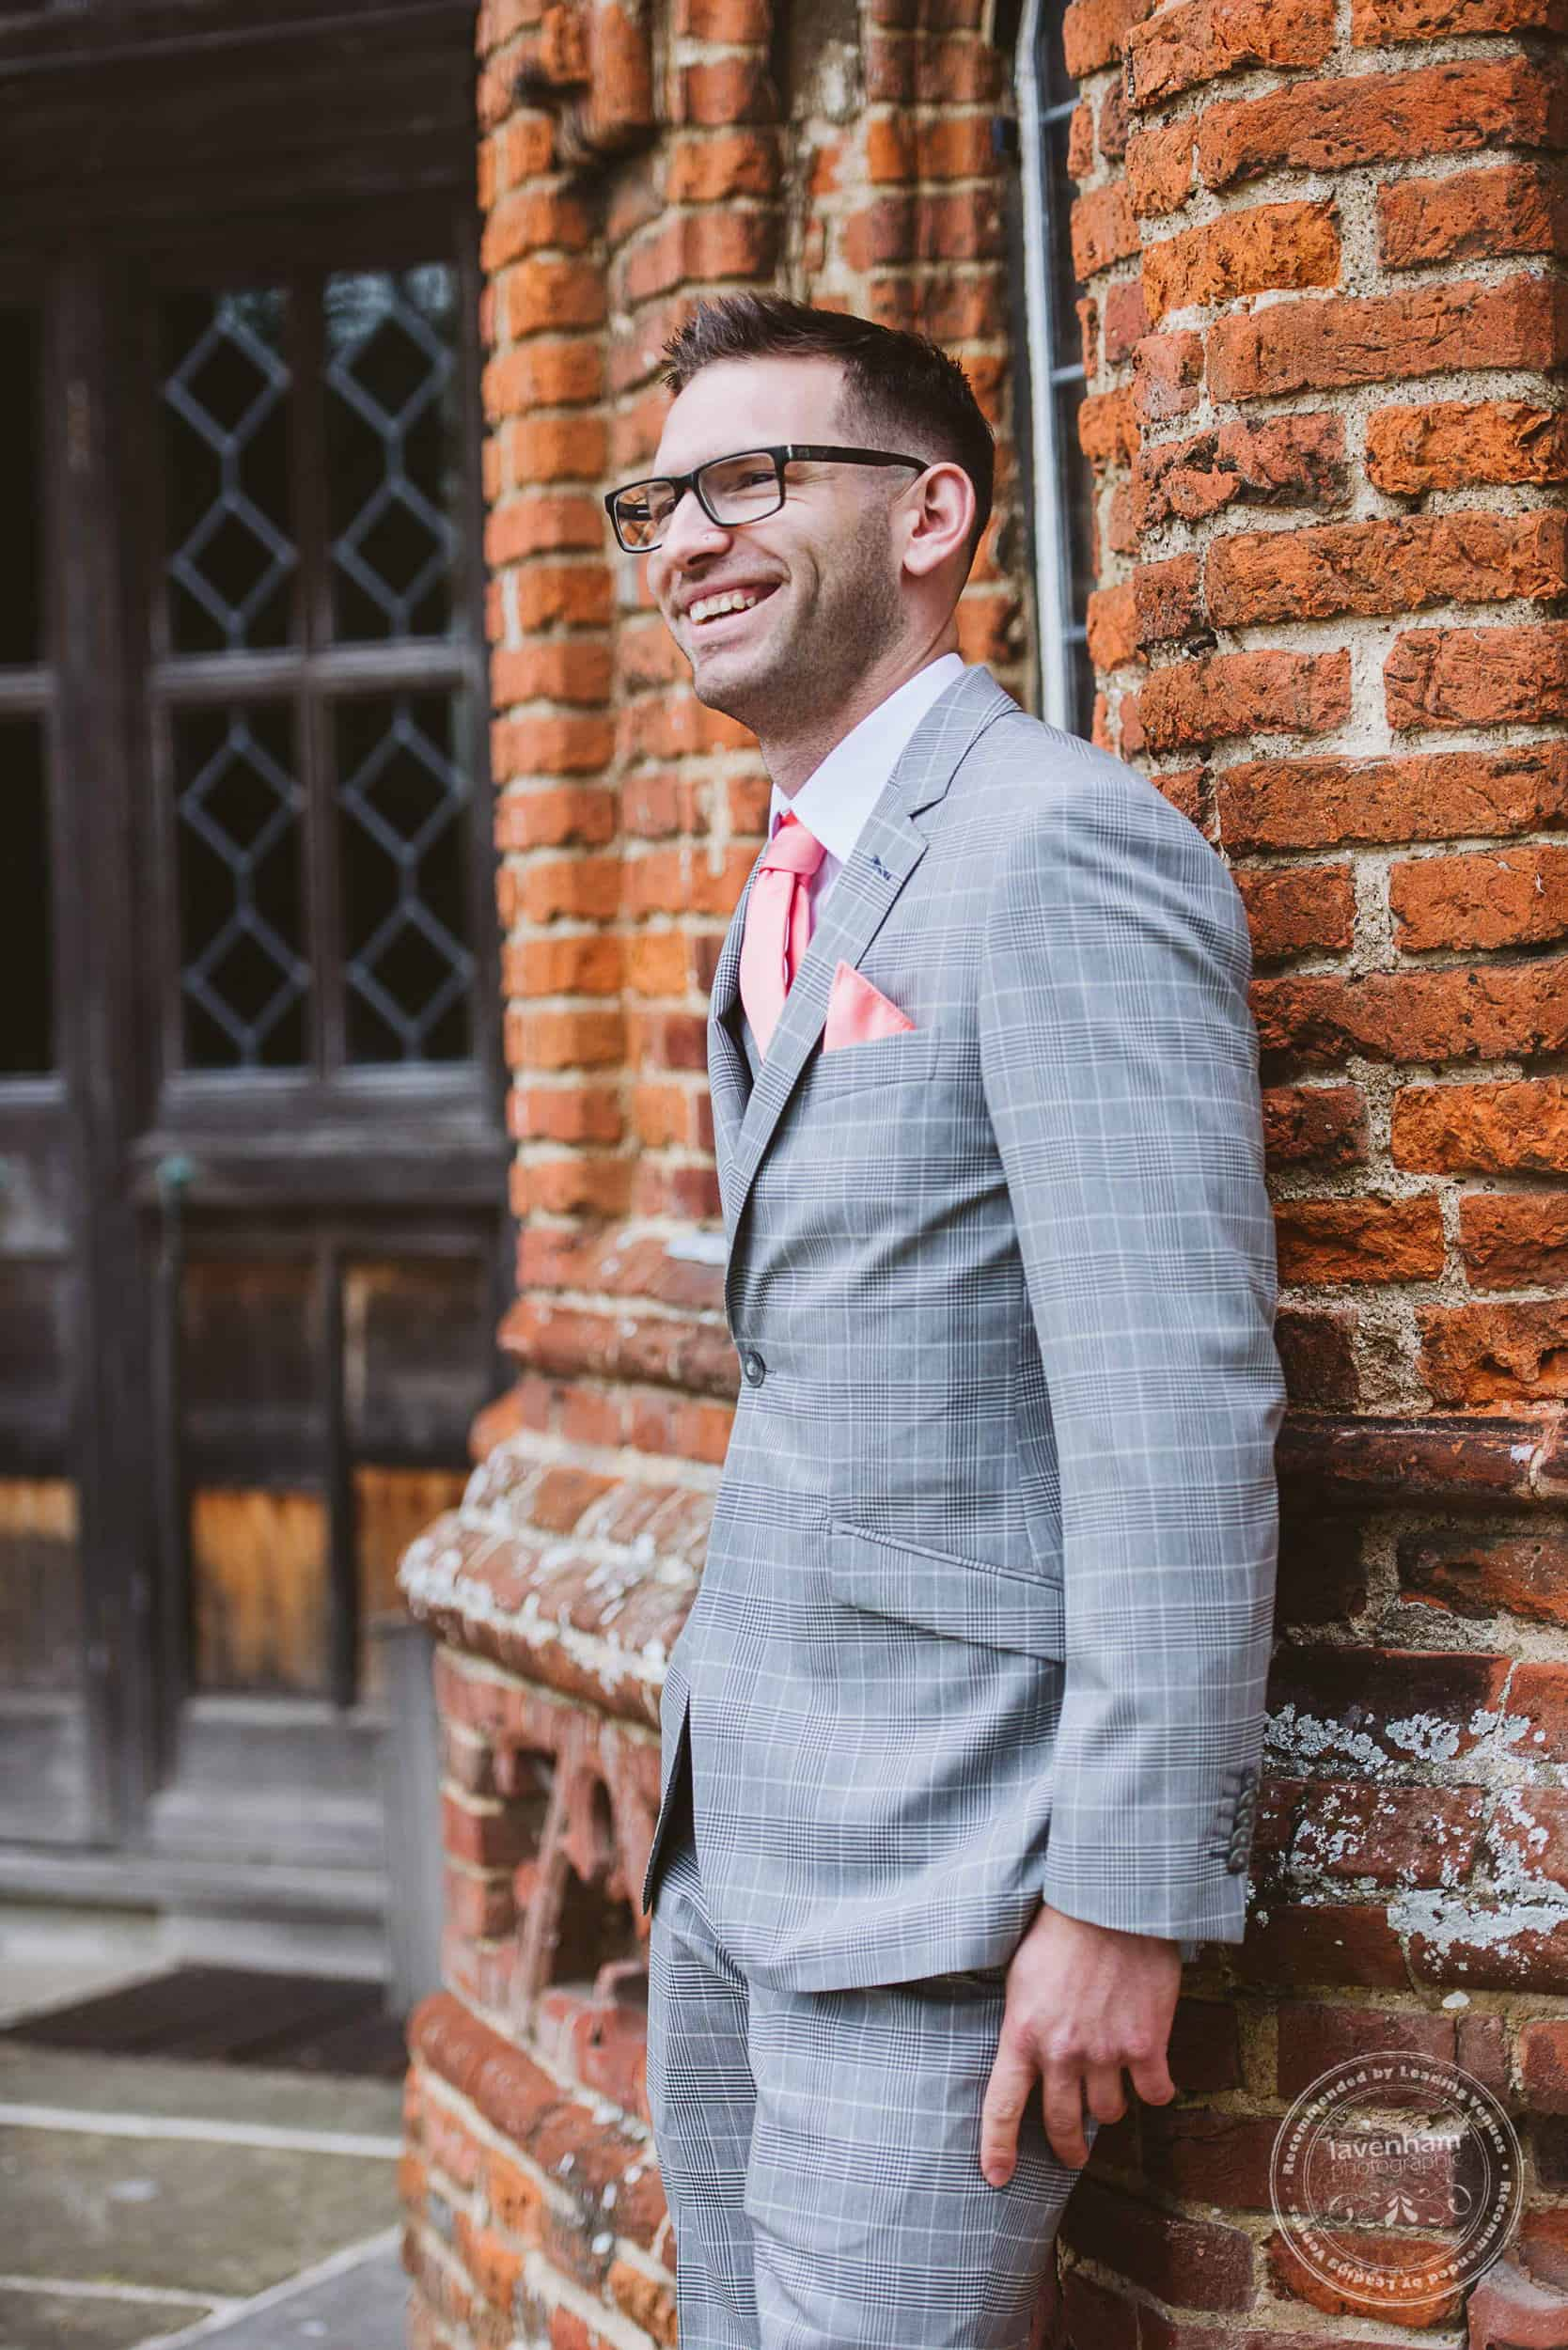 140717 Layer Marney Wedding Photography by Lavenham Photographic 025